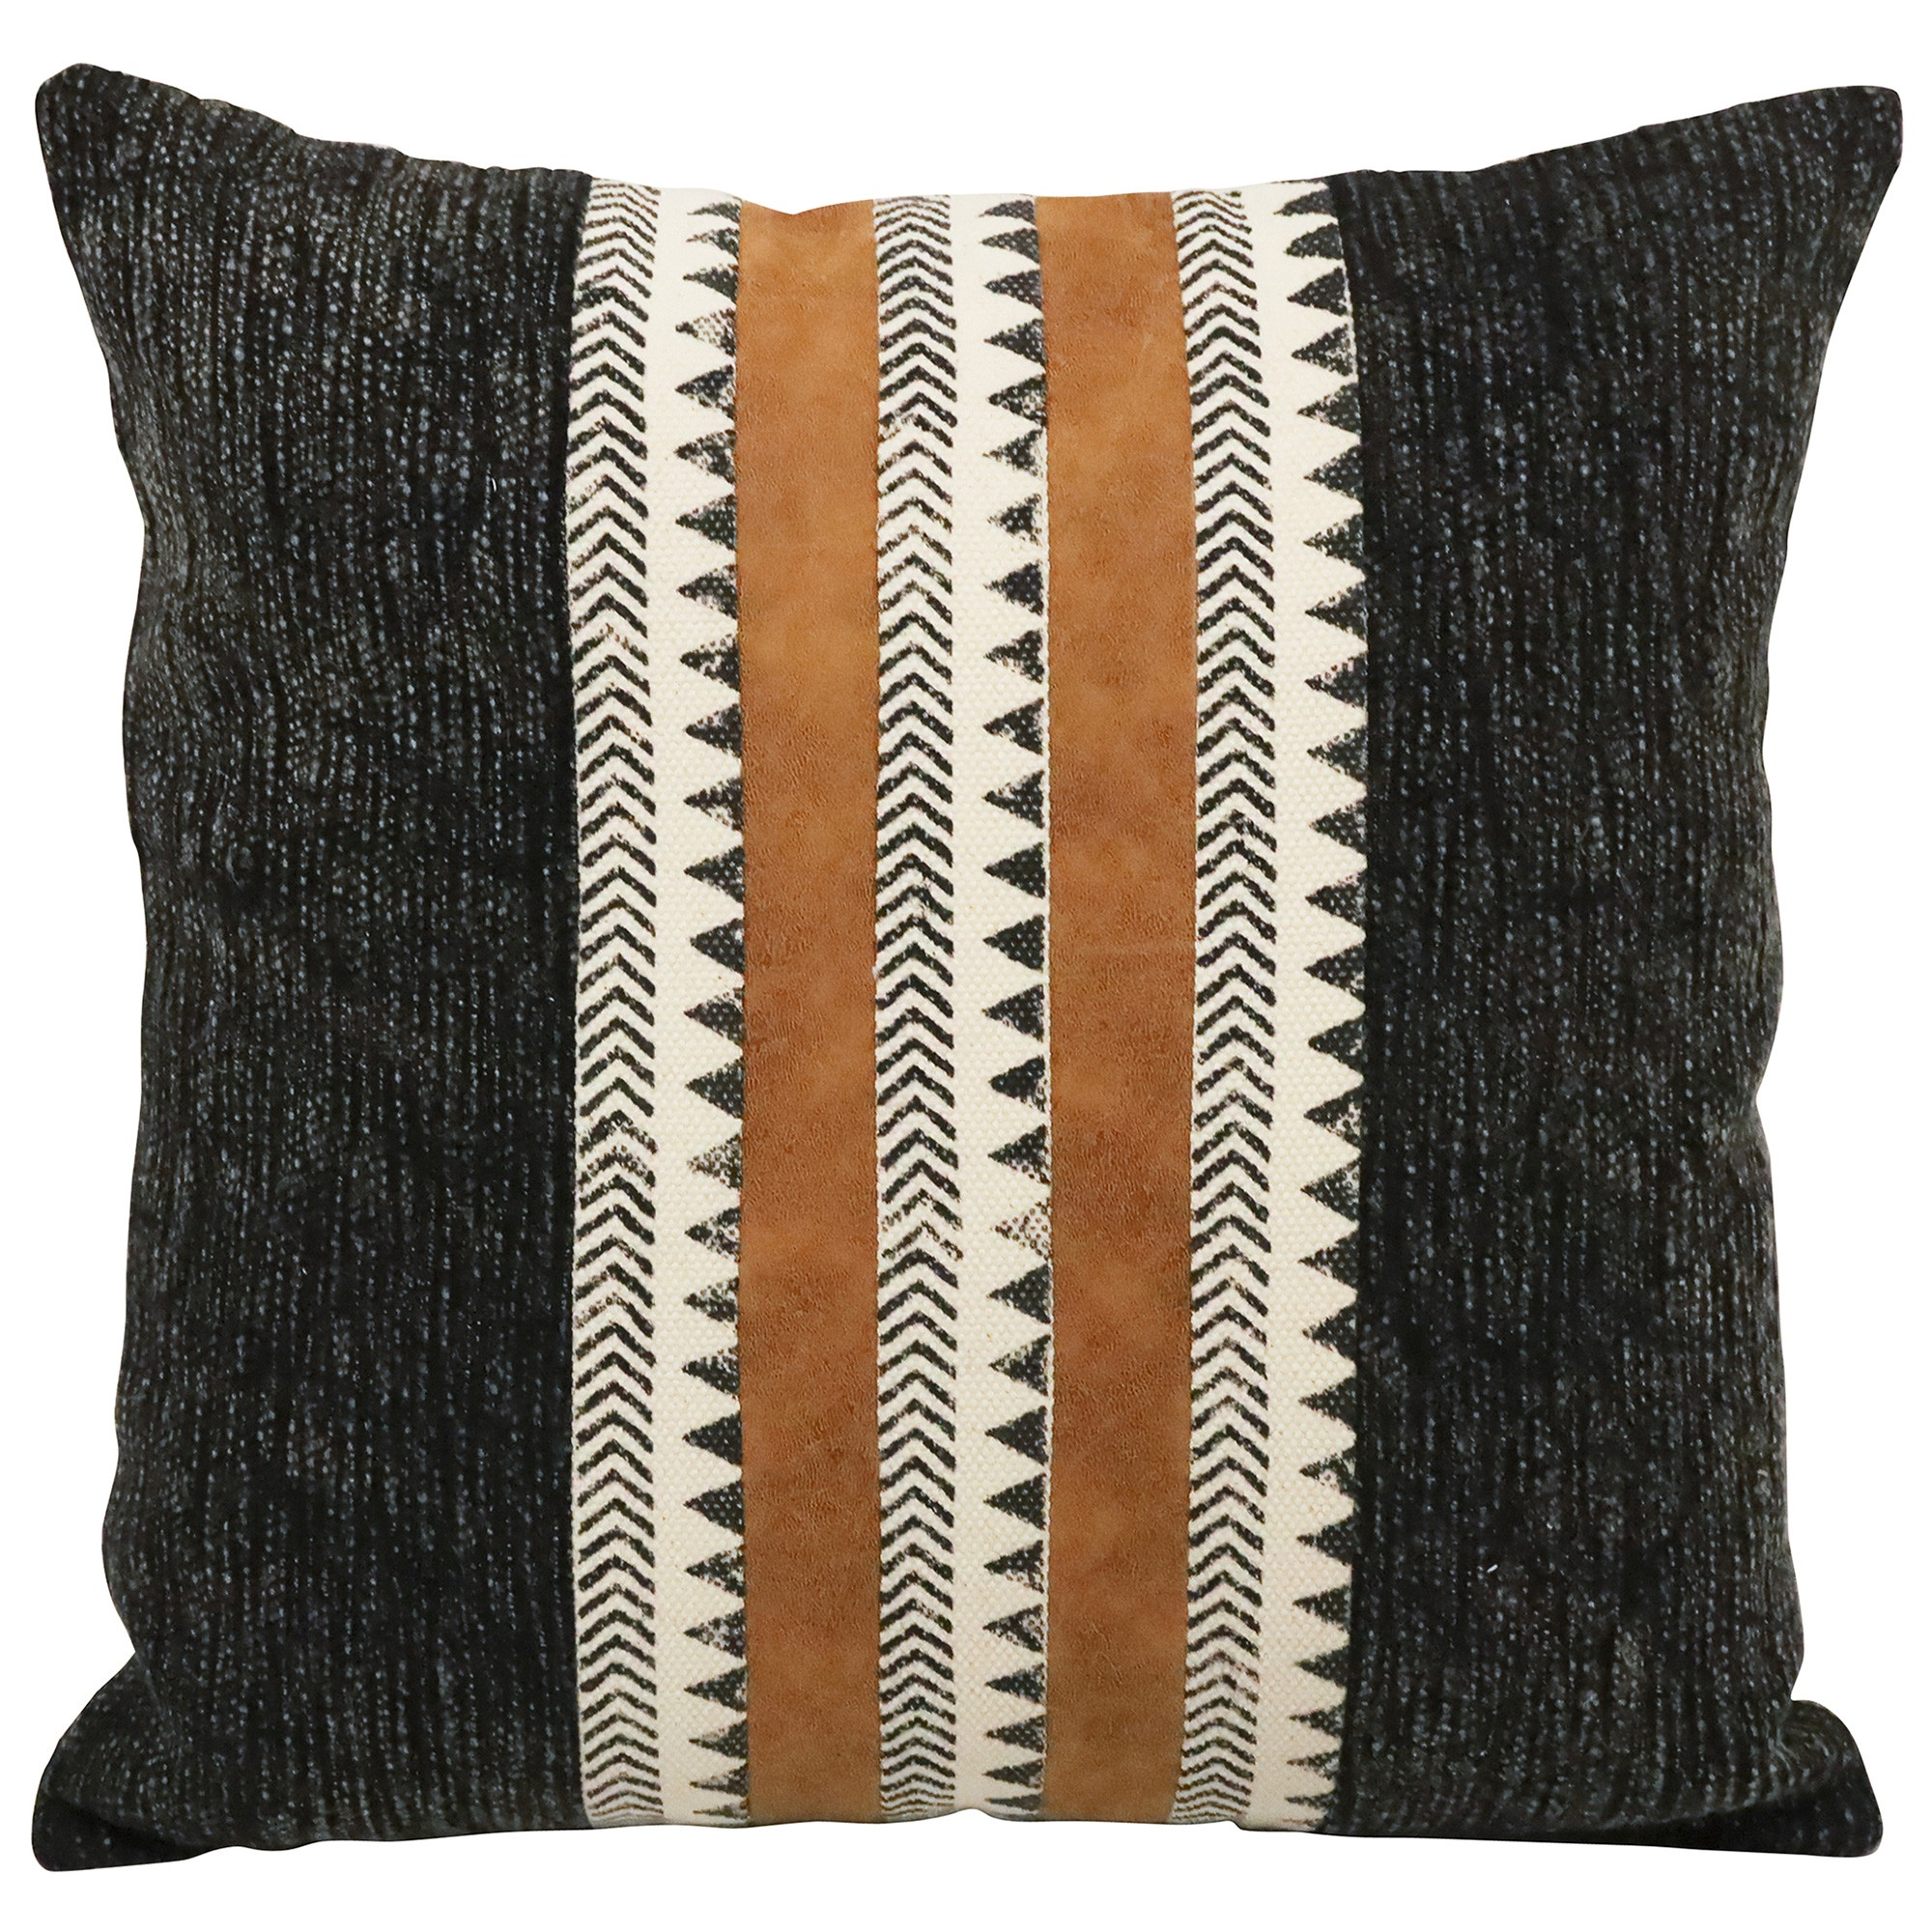 Carma Suede & Cotton Scatter Cushion